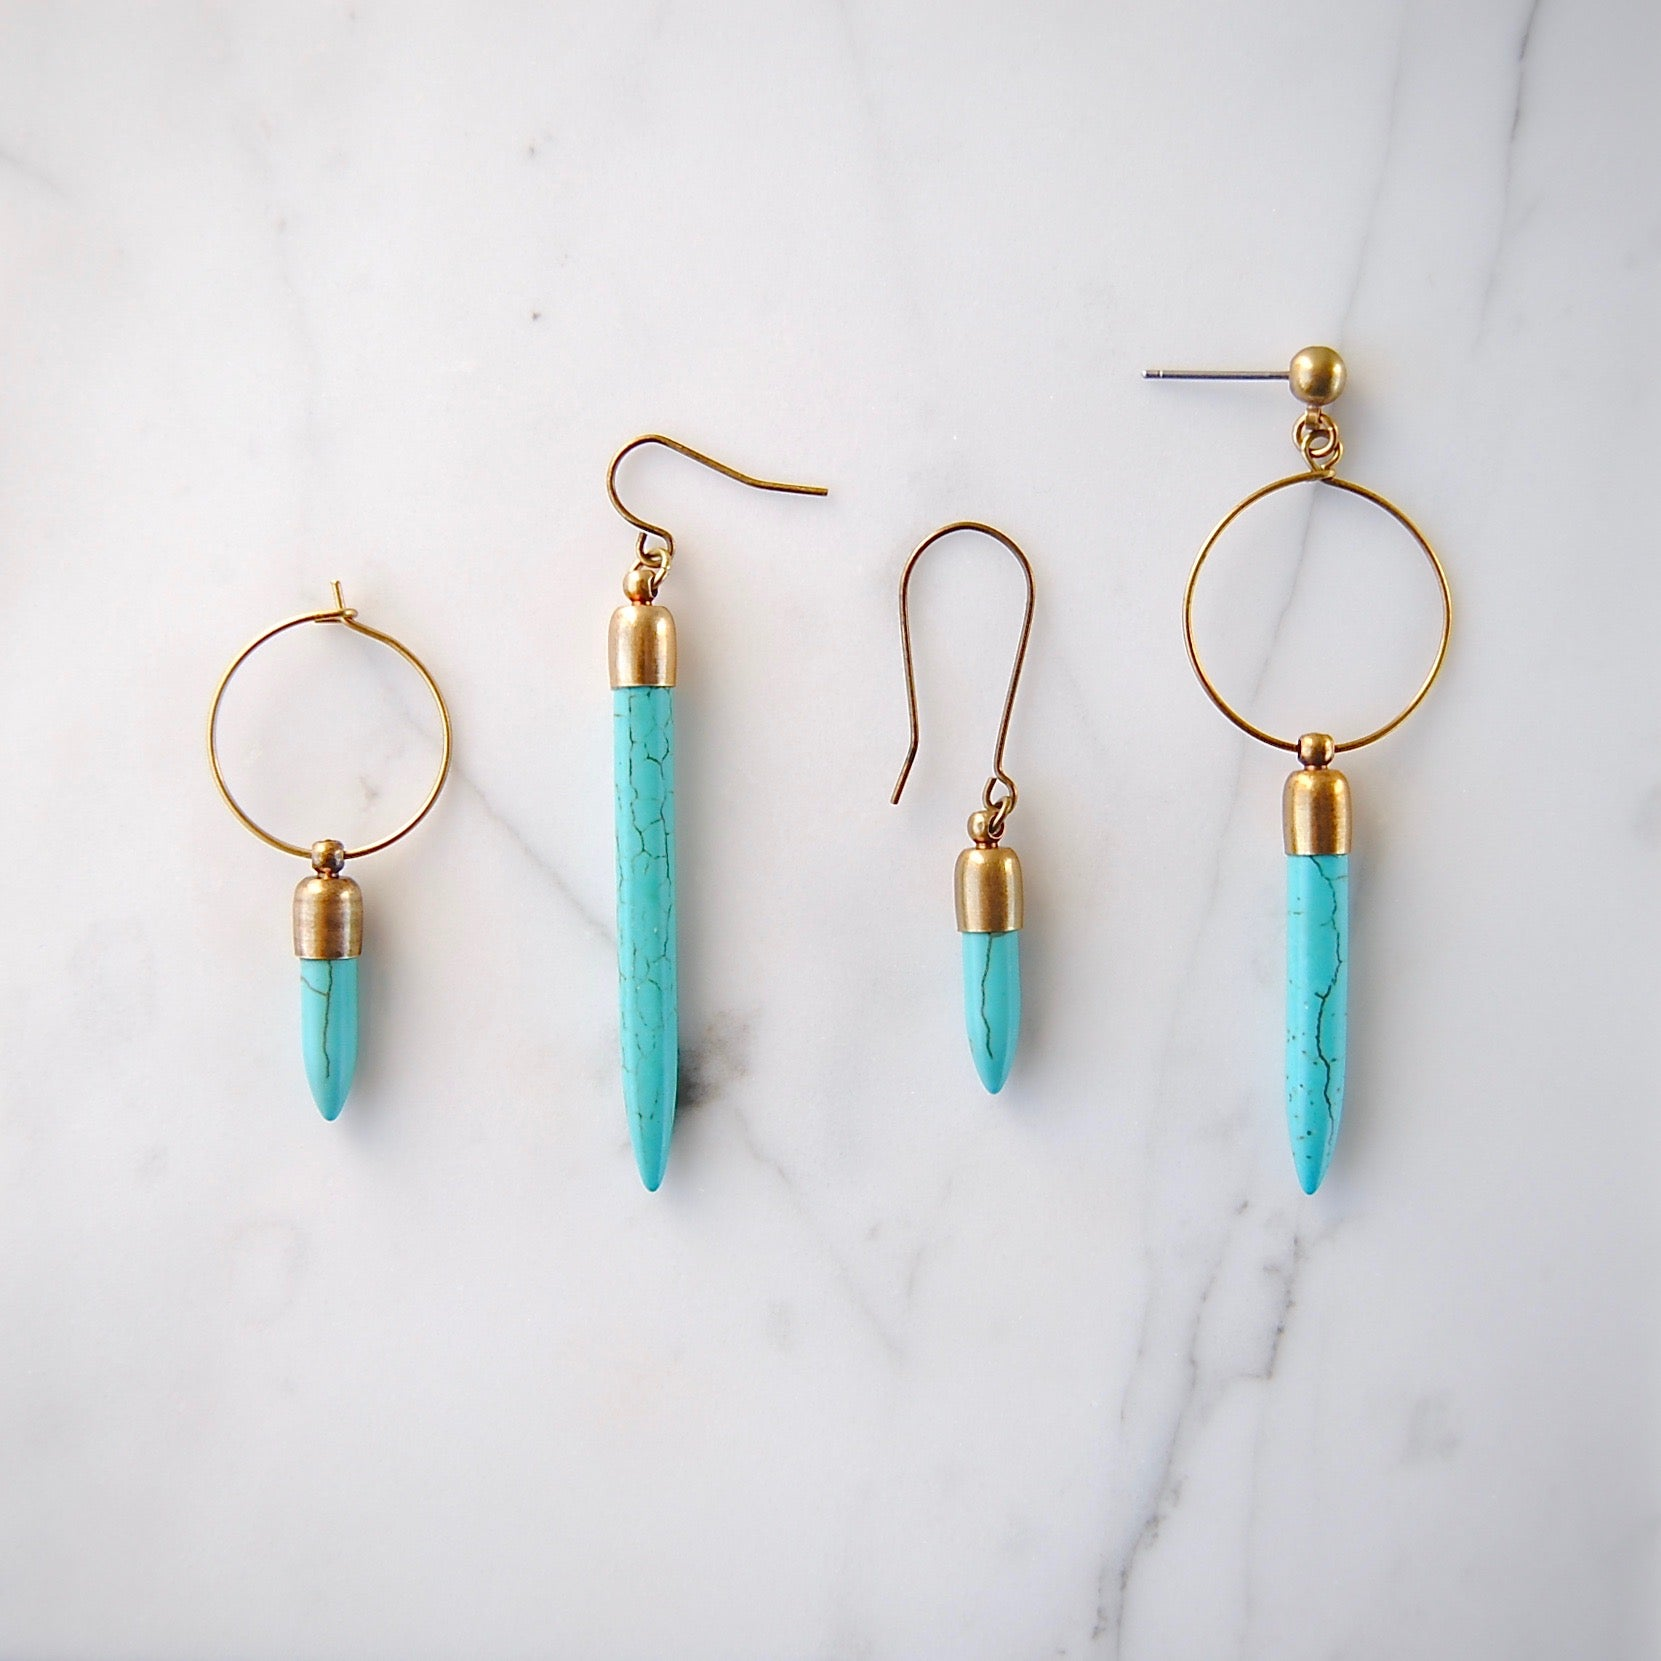 COORDINATING EARRING STYLES